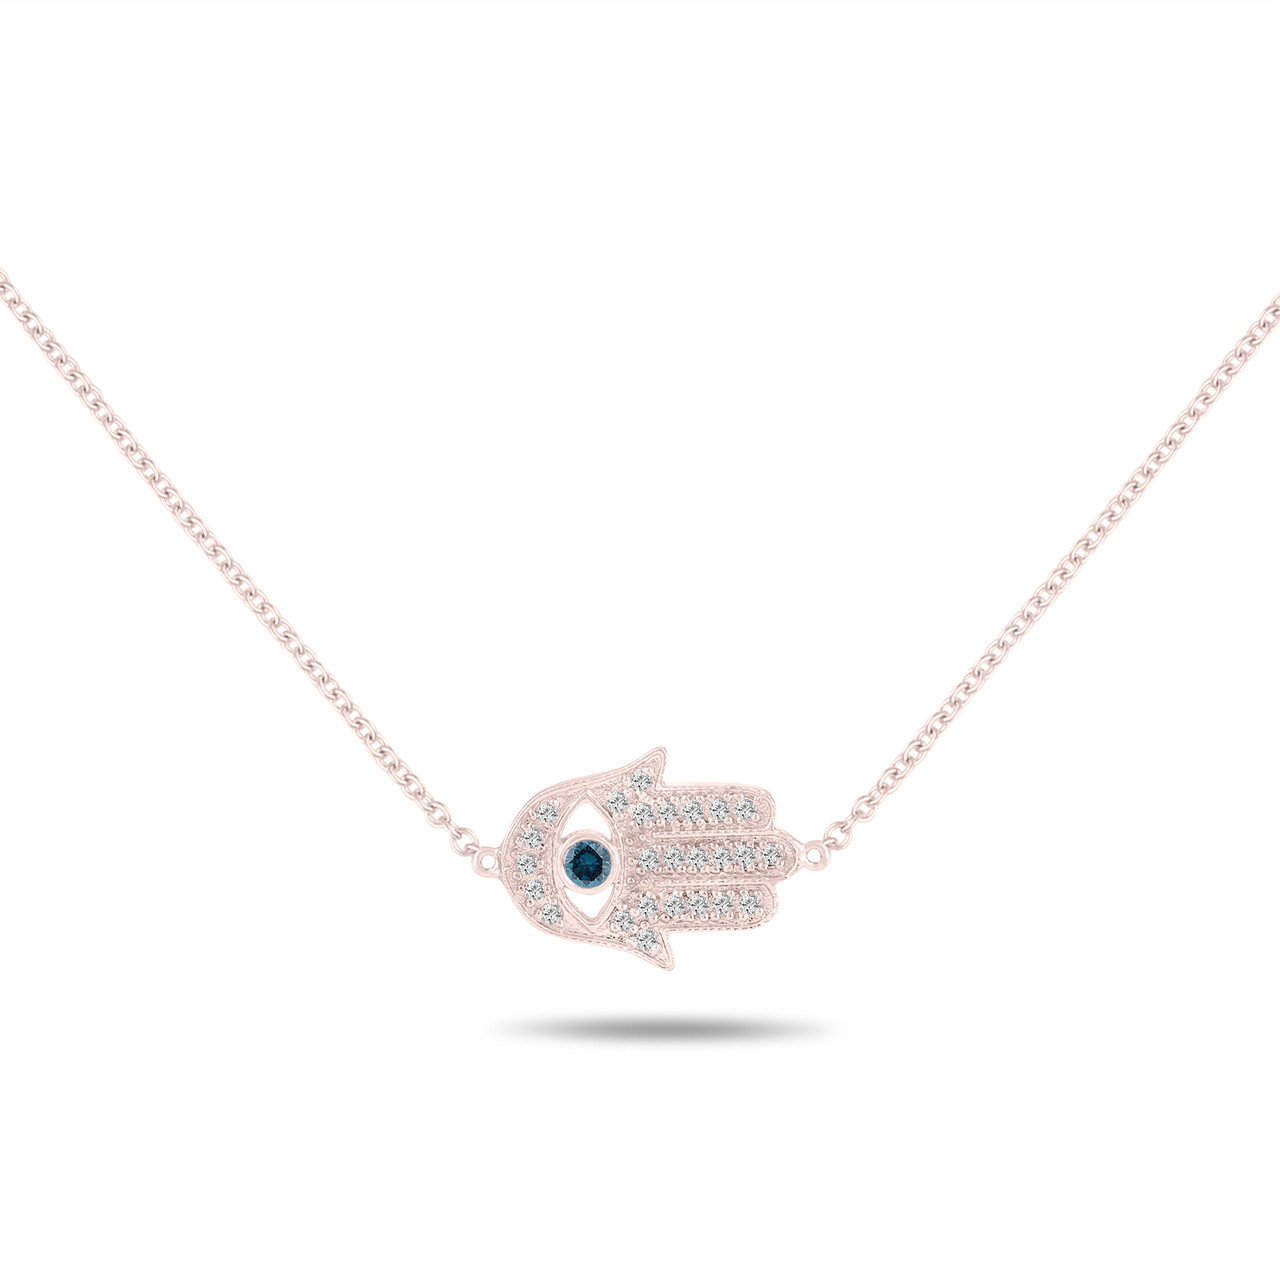 Hamsa diamond pendant necklace blue diamond evil eye pendant 14k hamsa diamond pendant necklace blue diamond evil eye pendant 14k rose gold 032 carat unique handmade aloadofball Images